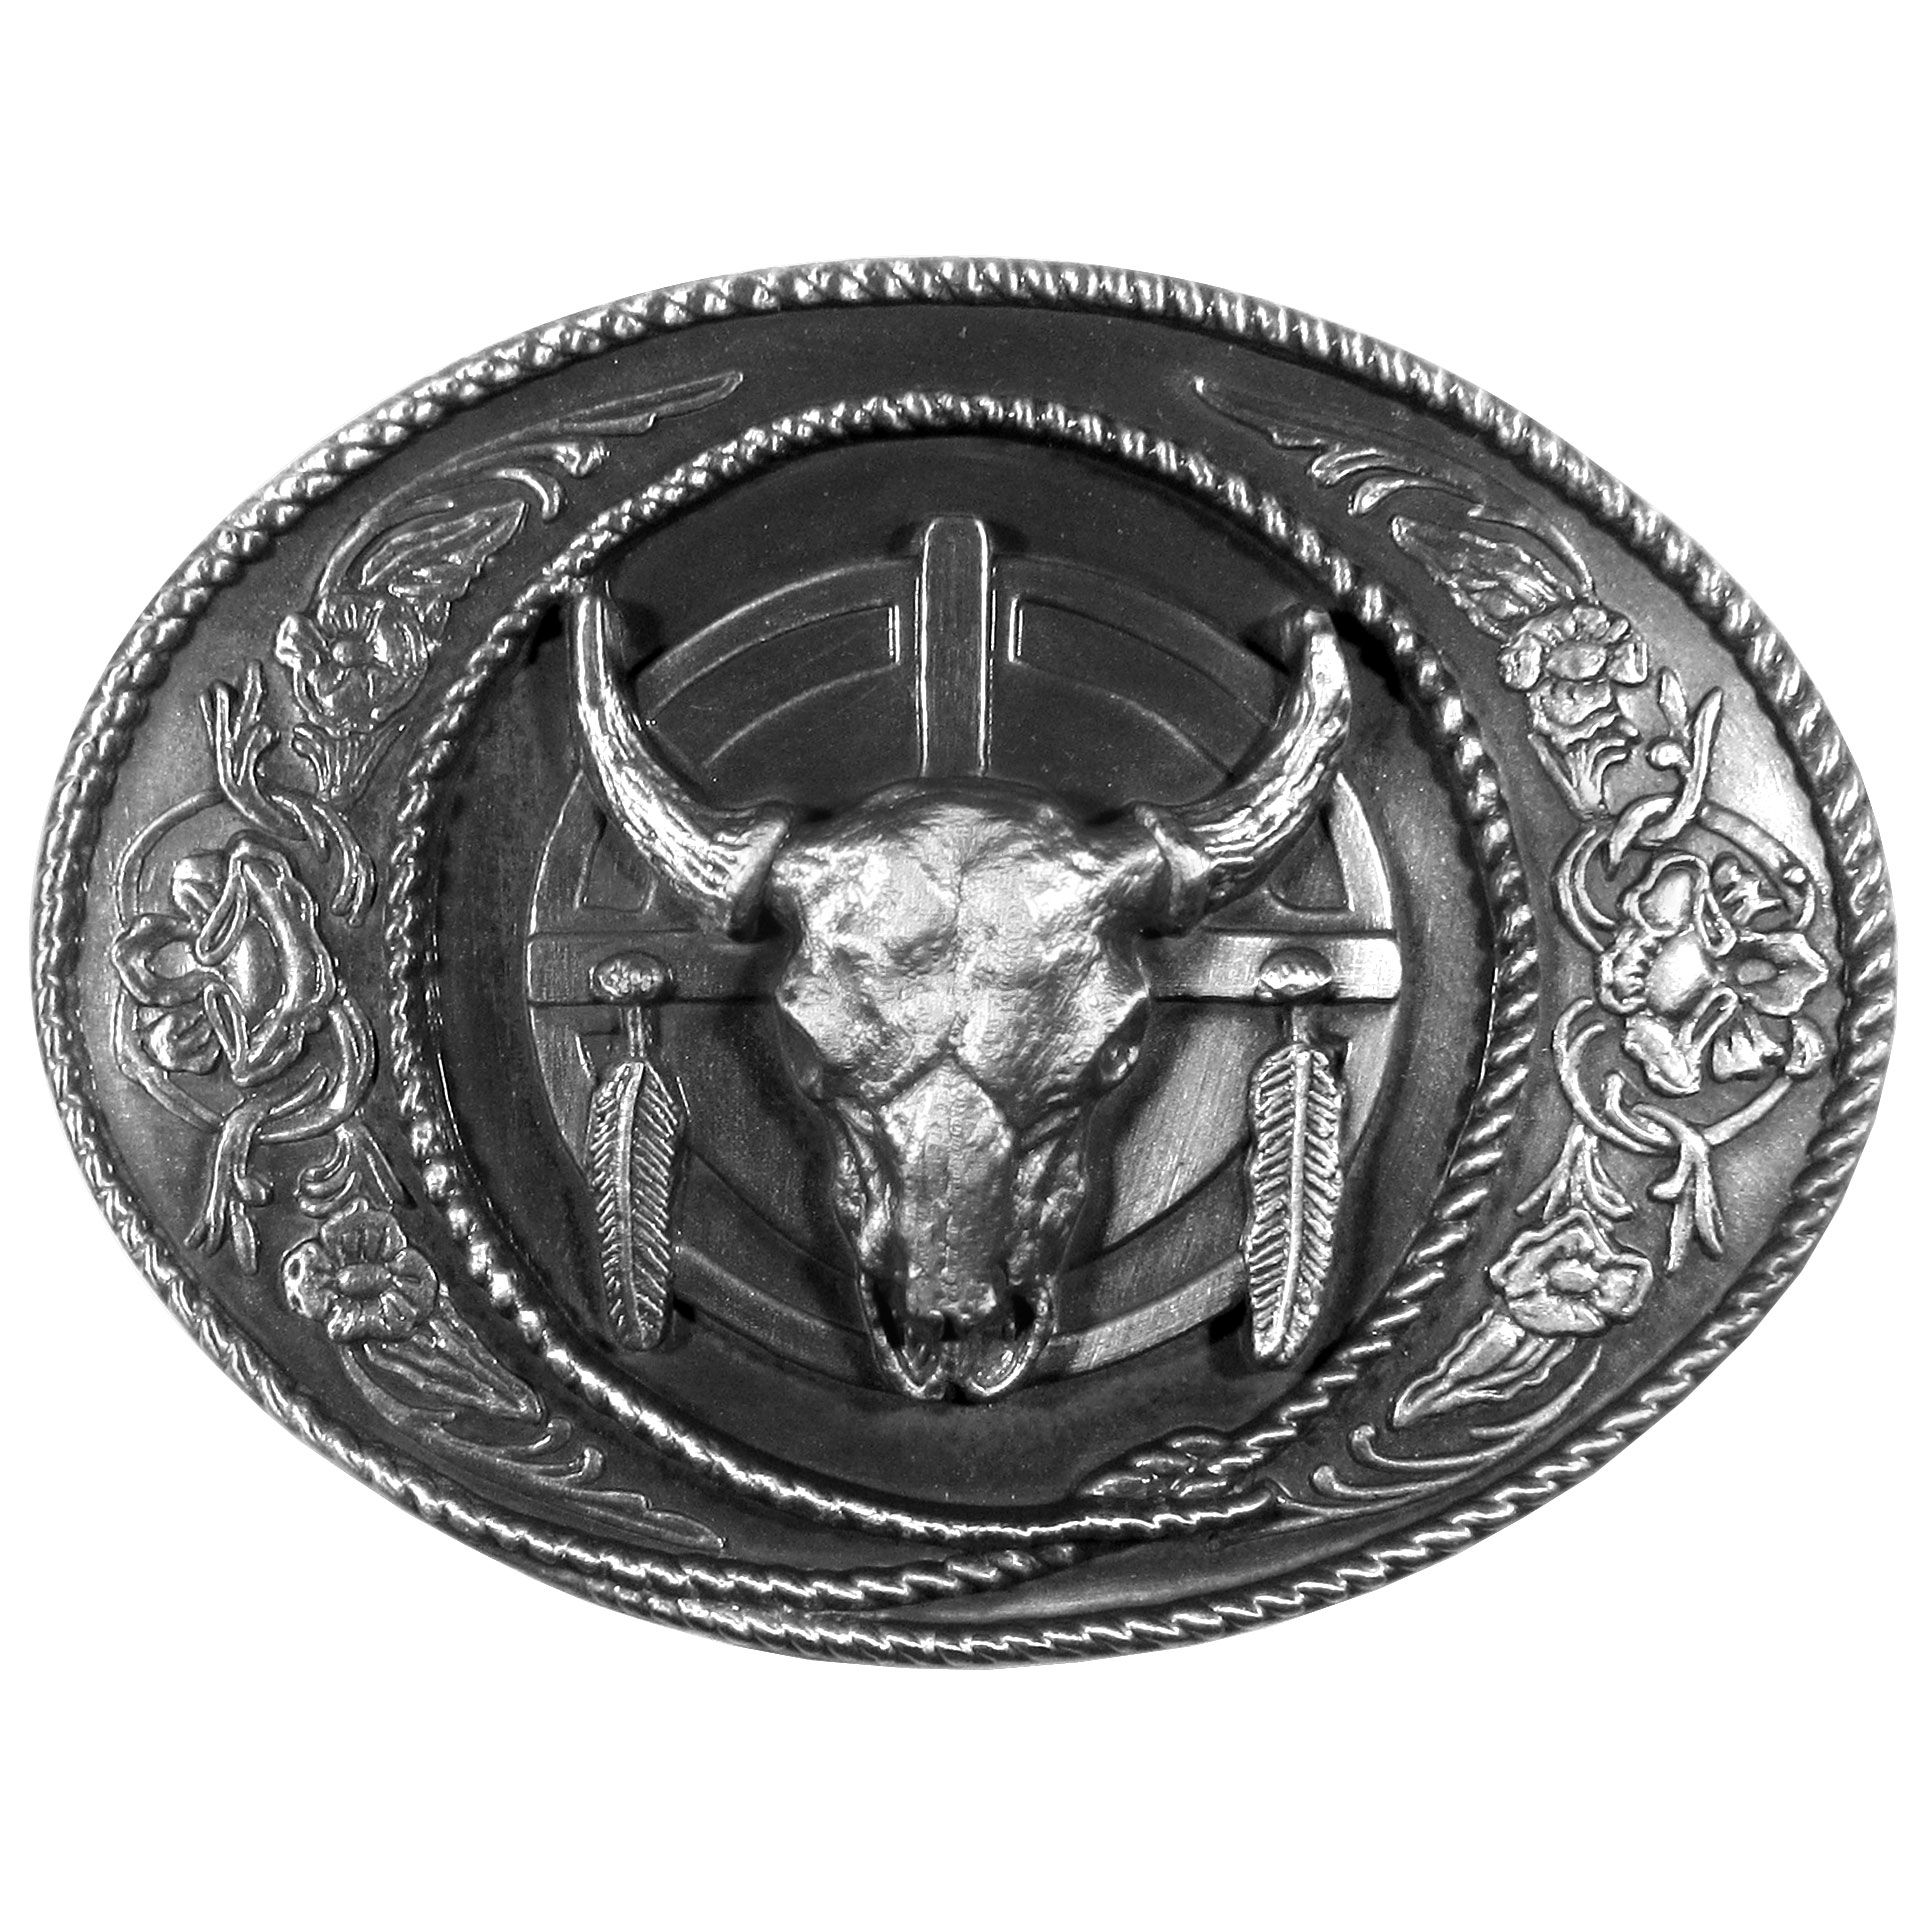 Buffalo Skull Antiqued Belt Buckle - Finely sculpted and intricately designed belt buckle. Our unique designs often become collector's items.